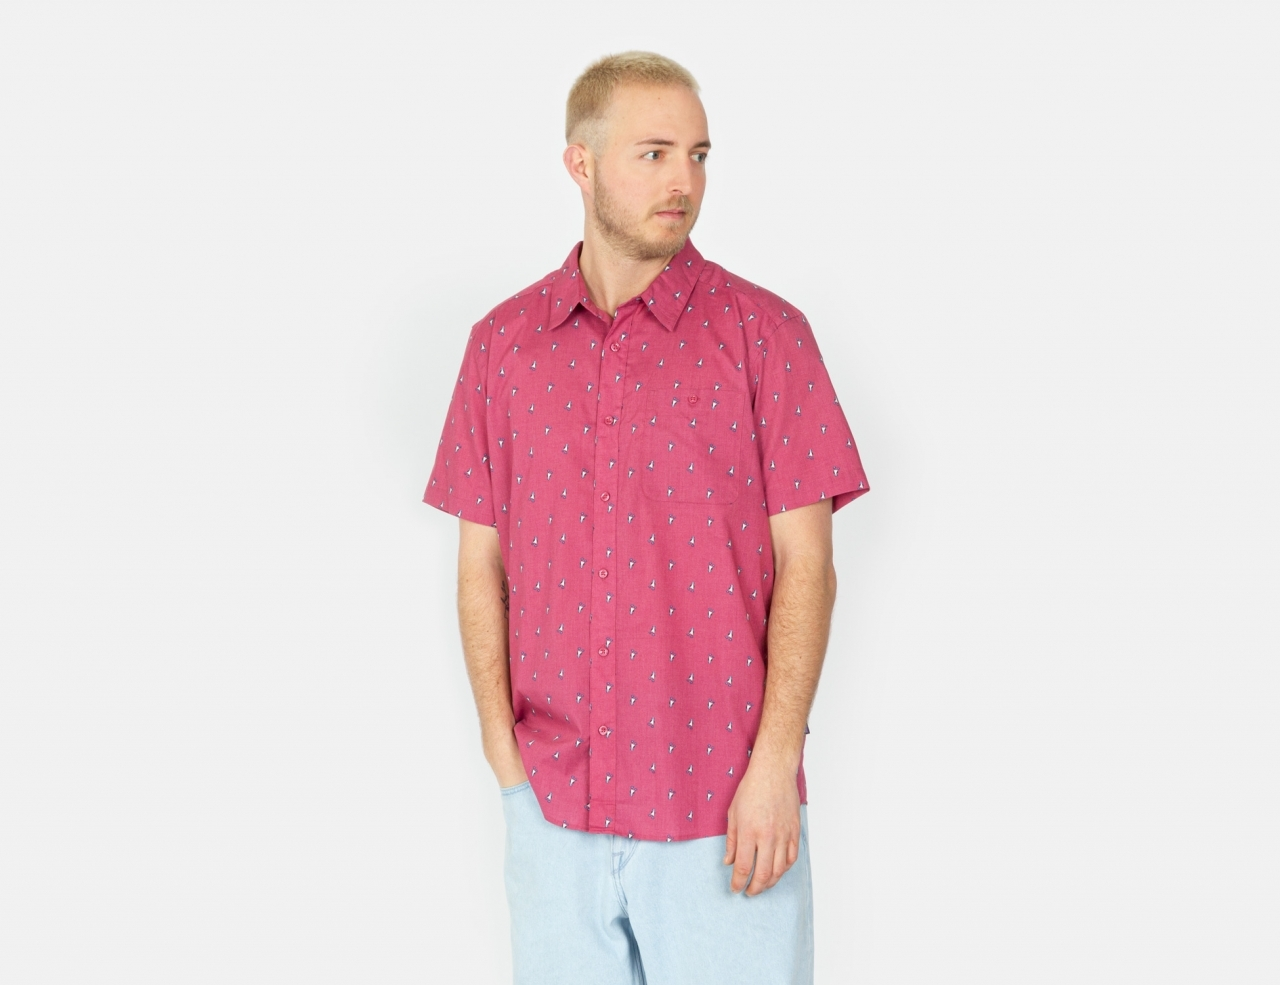 Patagonia Go To S/S Shirt - Blue Prints Micro / Star Pink